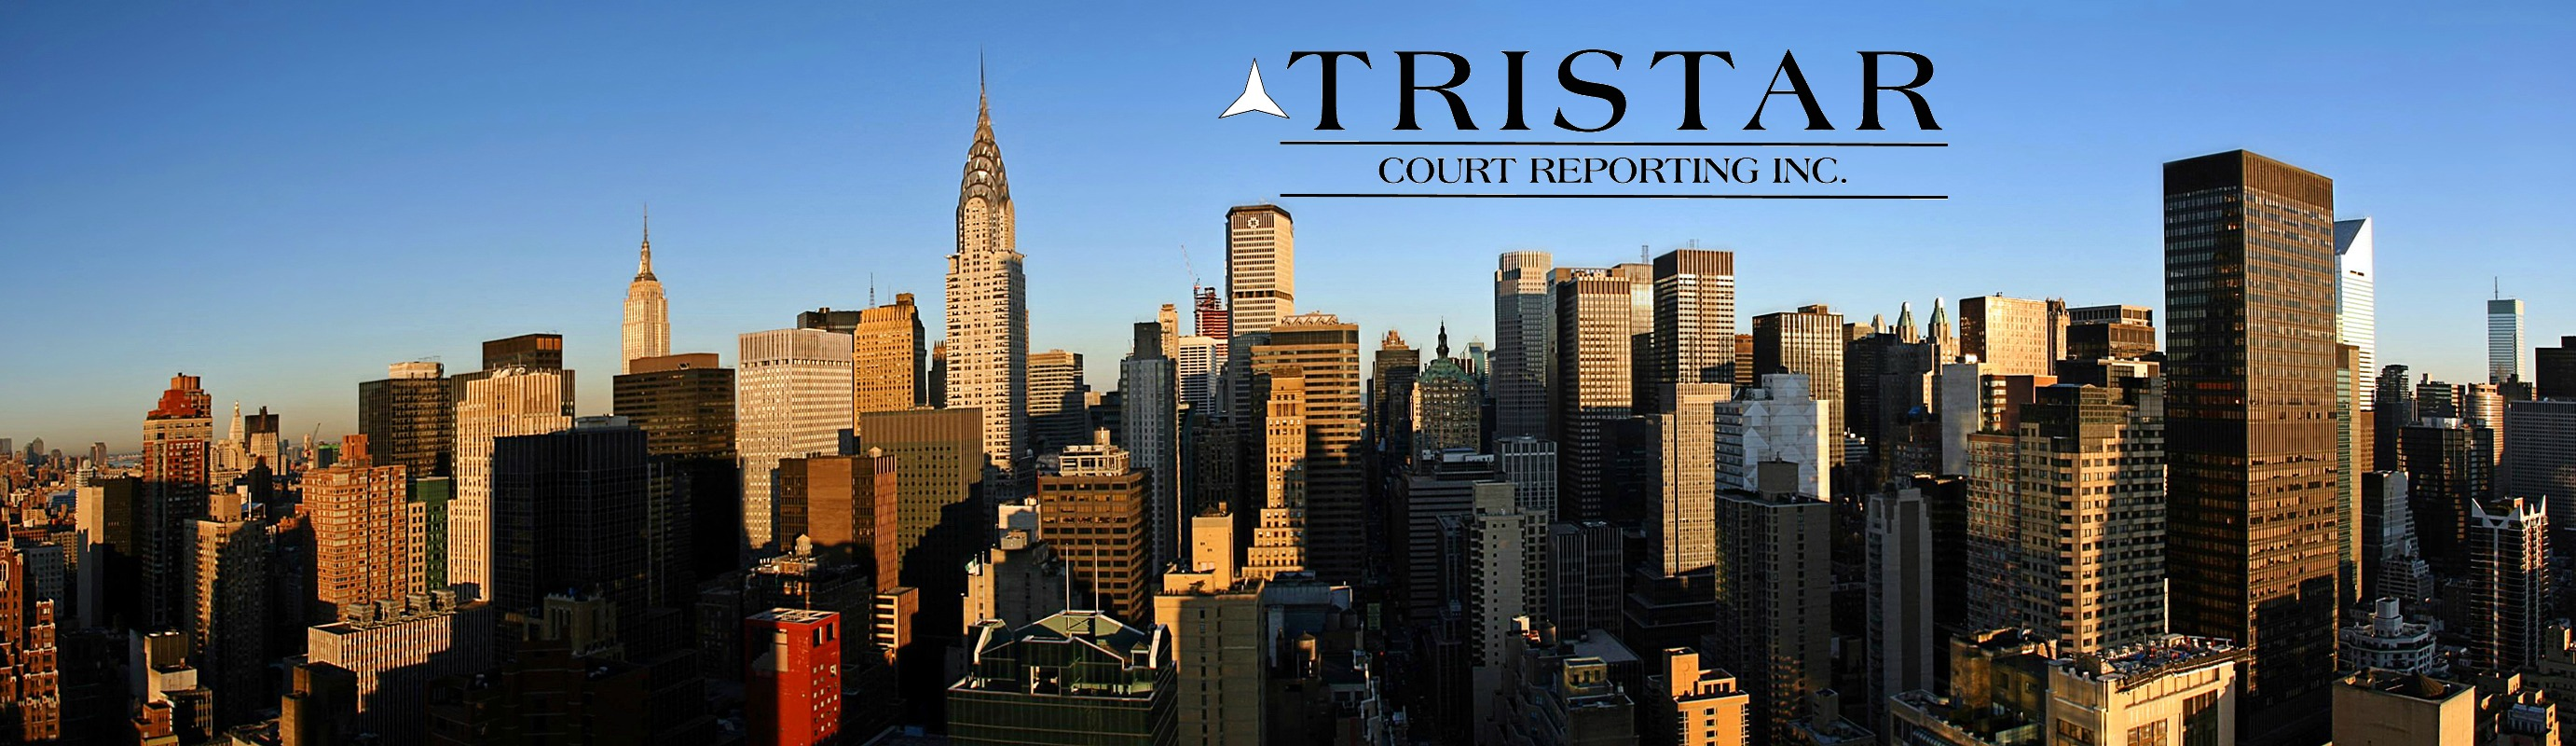 Tristar Court Reporting